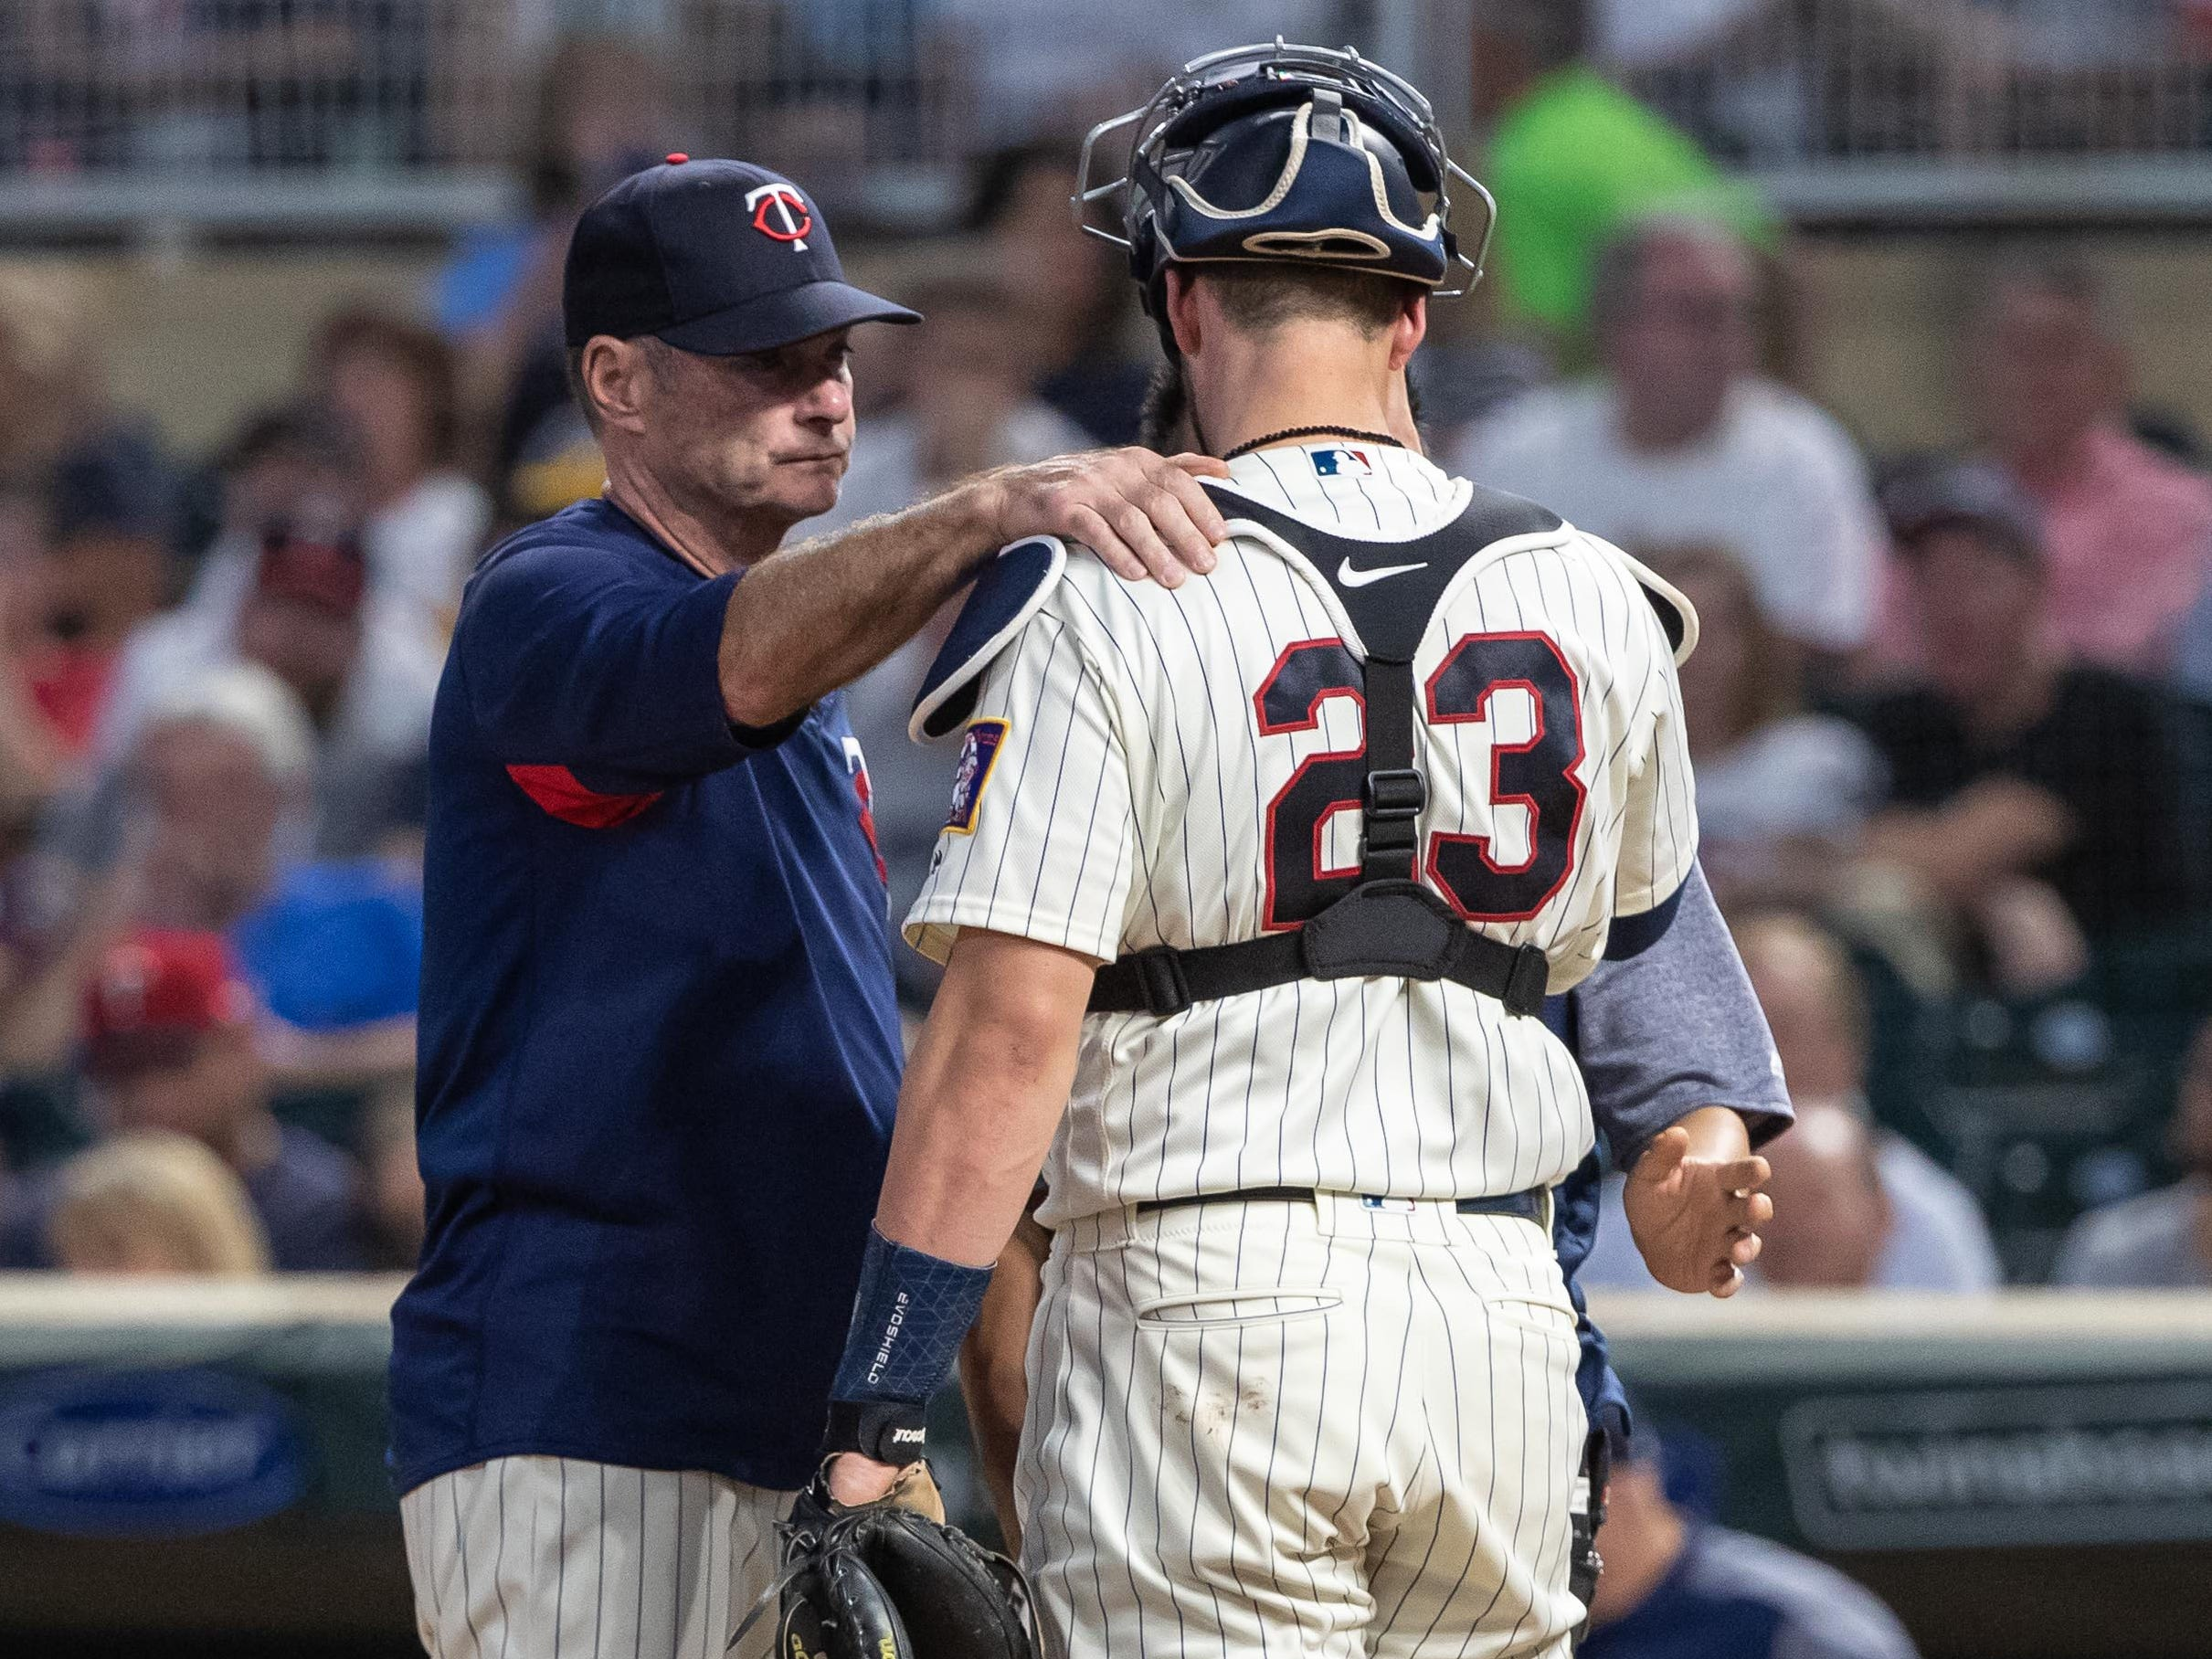 Sep 12, 2018; Minneapolis, MN, USA; Minnesota Twins manager Paul Molitor (4) speaks with catcher Mitch Garver (23) after being hit in the mask with a foul ball during the second inning against the New York Yankees at Target Field.